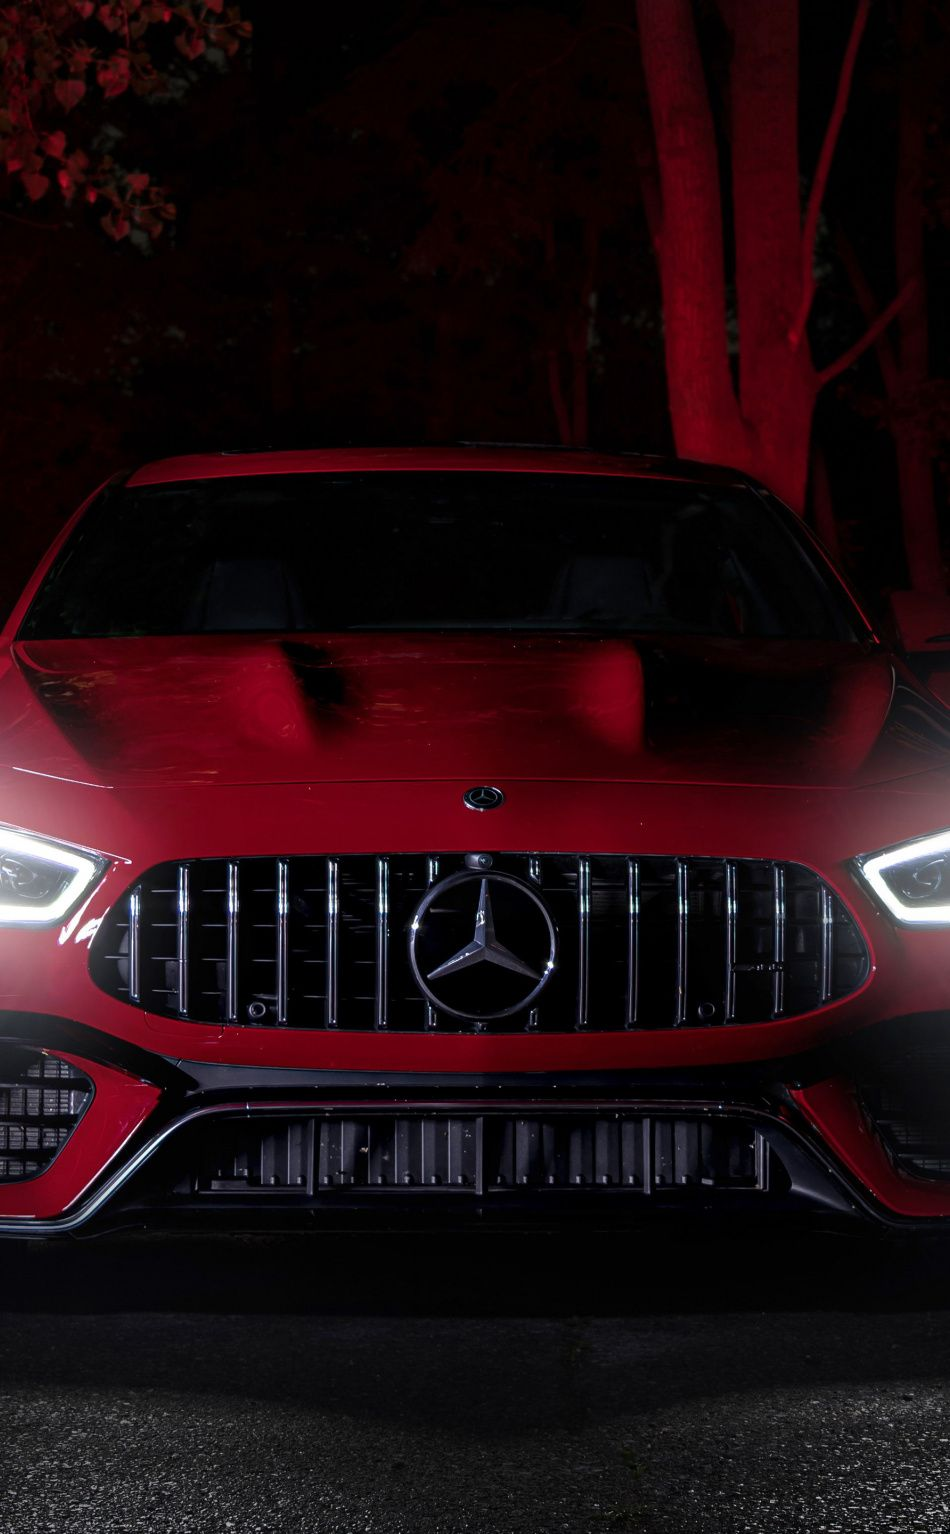 950x1534 2019 Mercedes Amg Gt 63 S 4matic Red Front Wallpaper Mercedes Amg Car Wallpapers Mercedes Benz Wallpaper